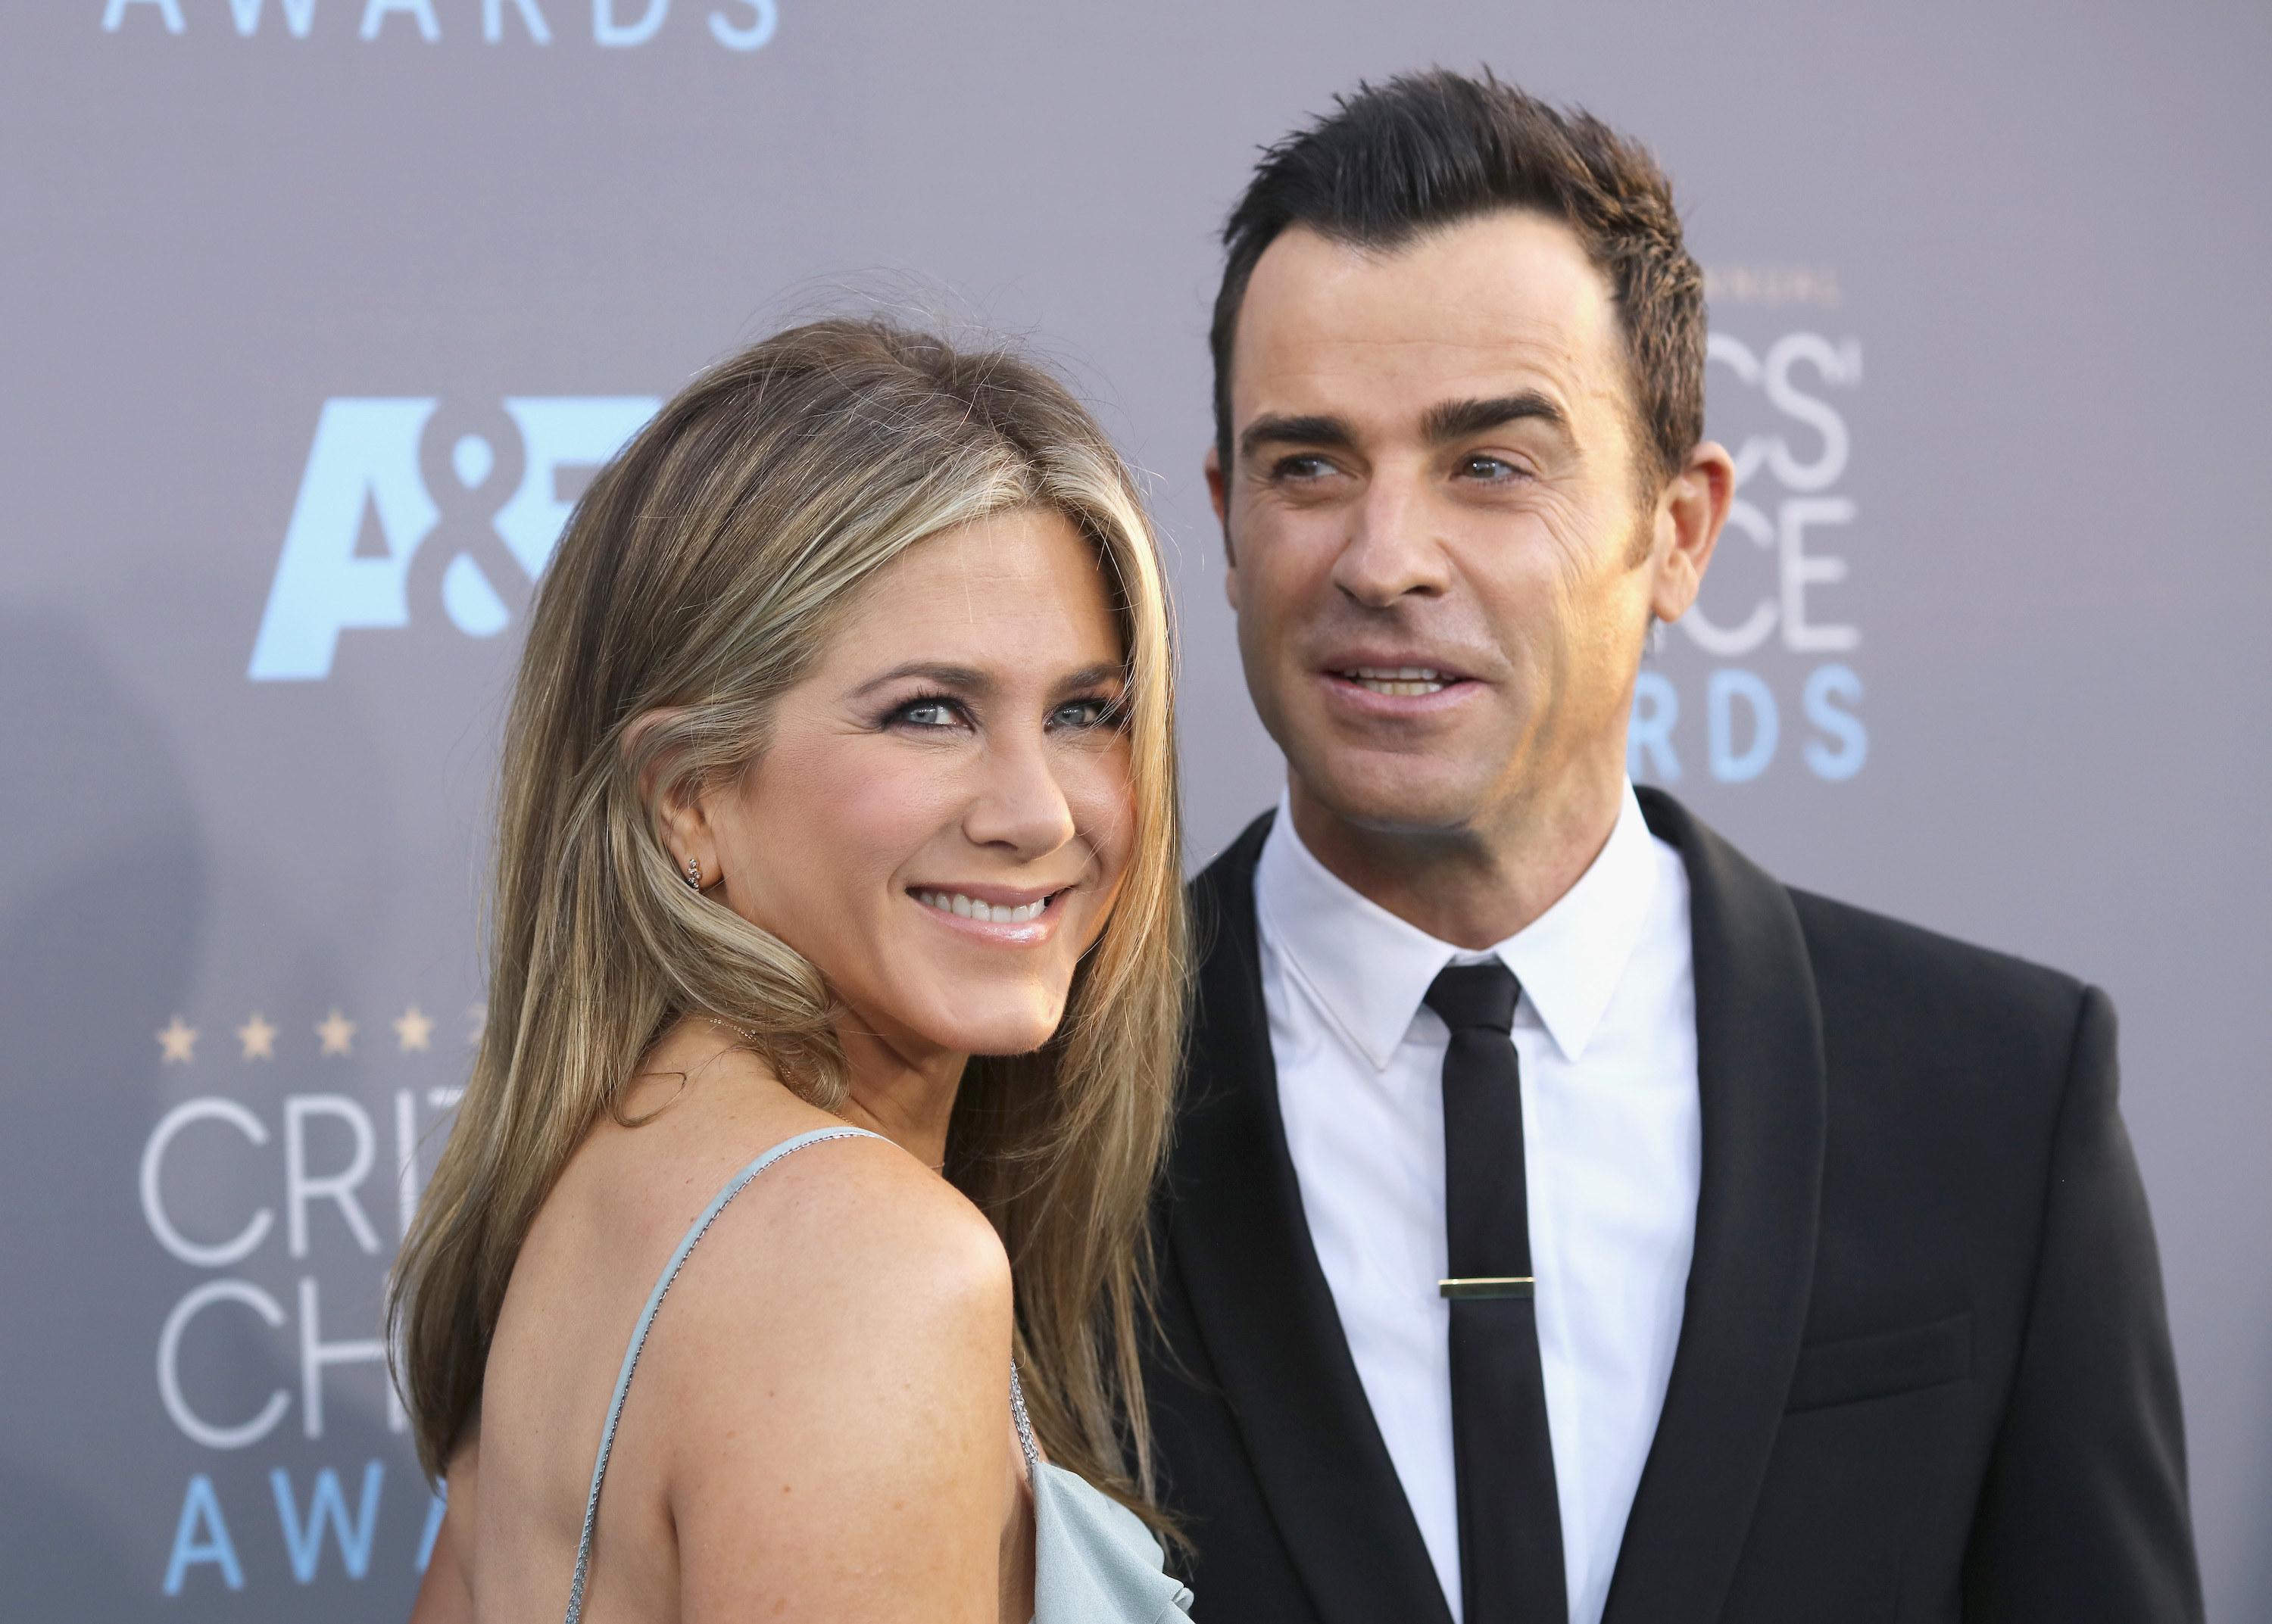 Theroux and Aniston at the Critics' Choice Awards in 2016